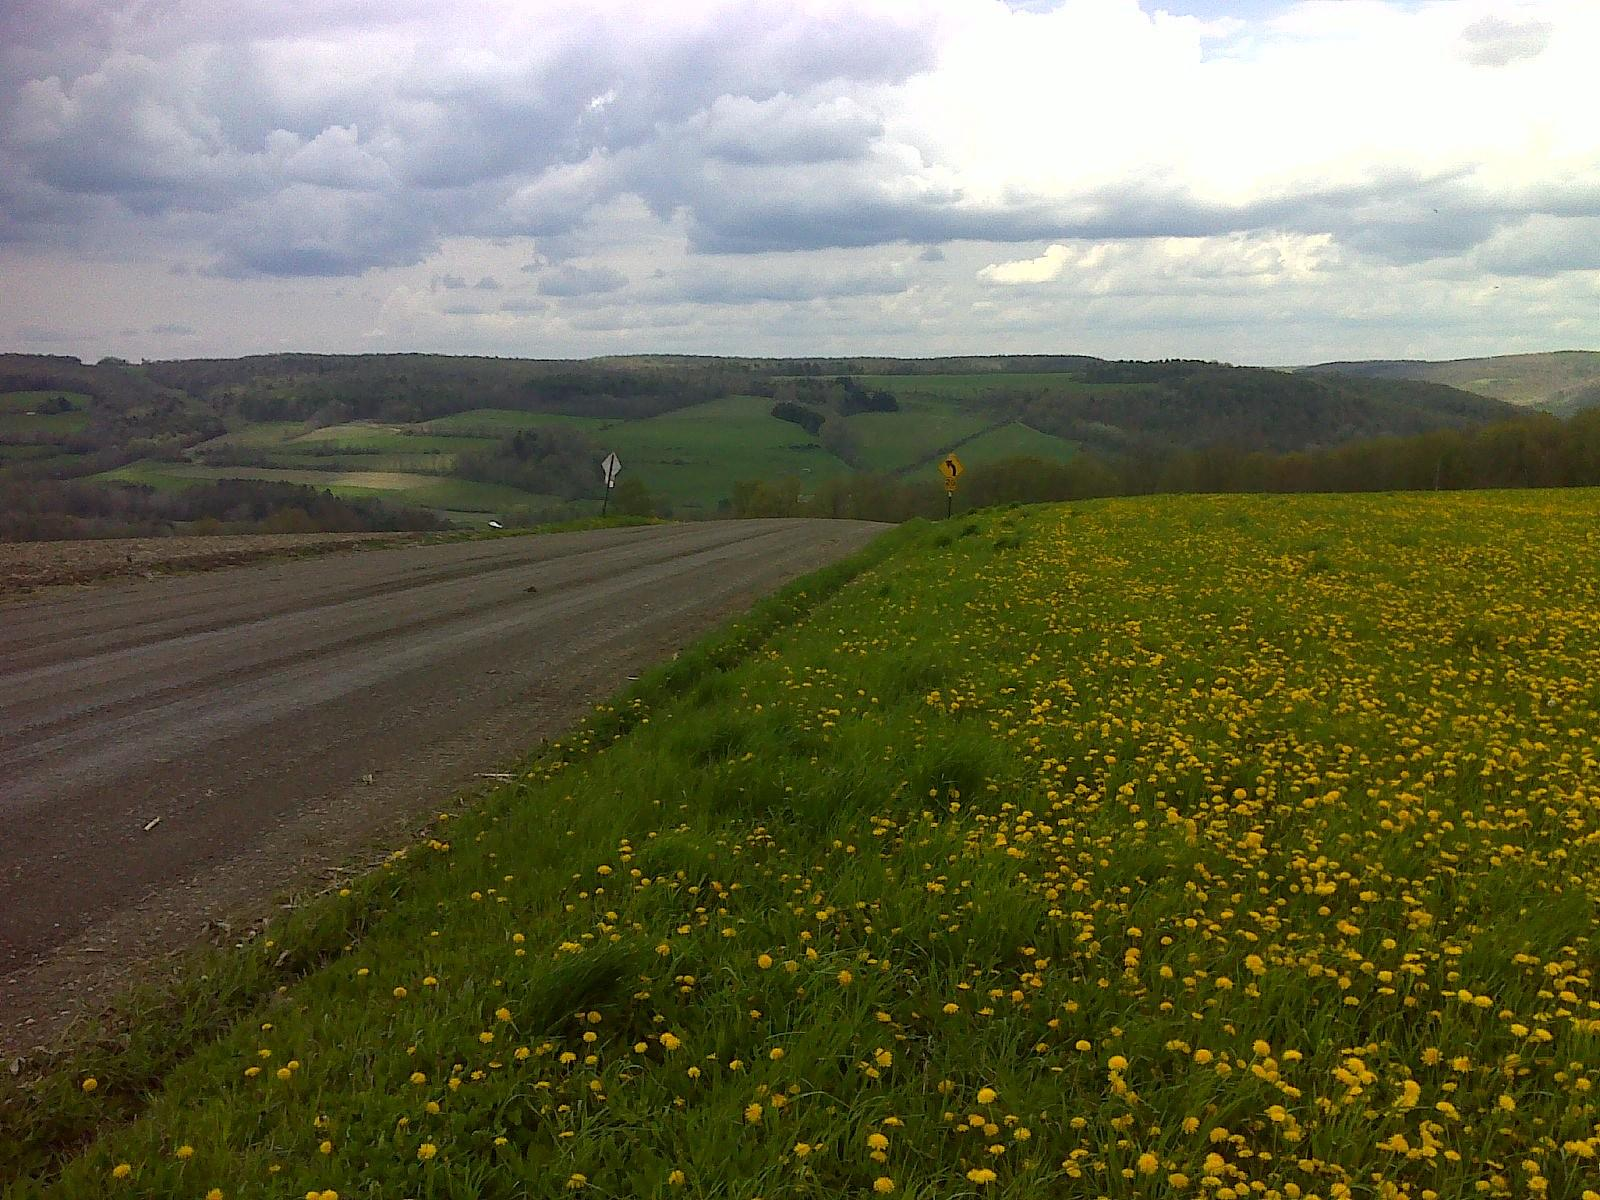 argazkia Finger Lakes - North Country Trail, a mostly road walk piece 13-MAY-16 03:52:35 PM